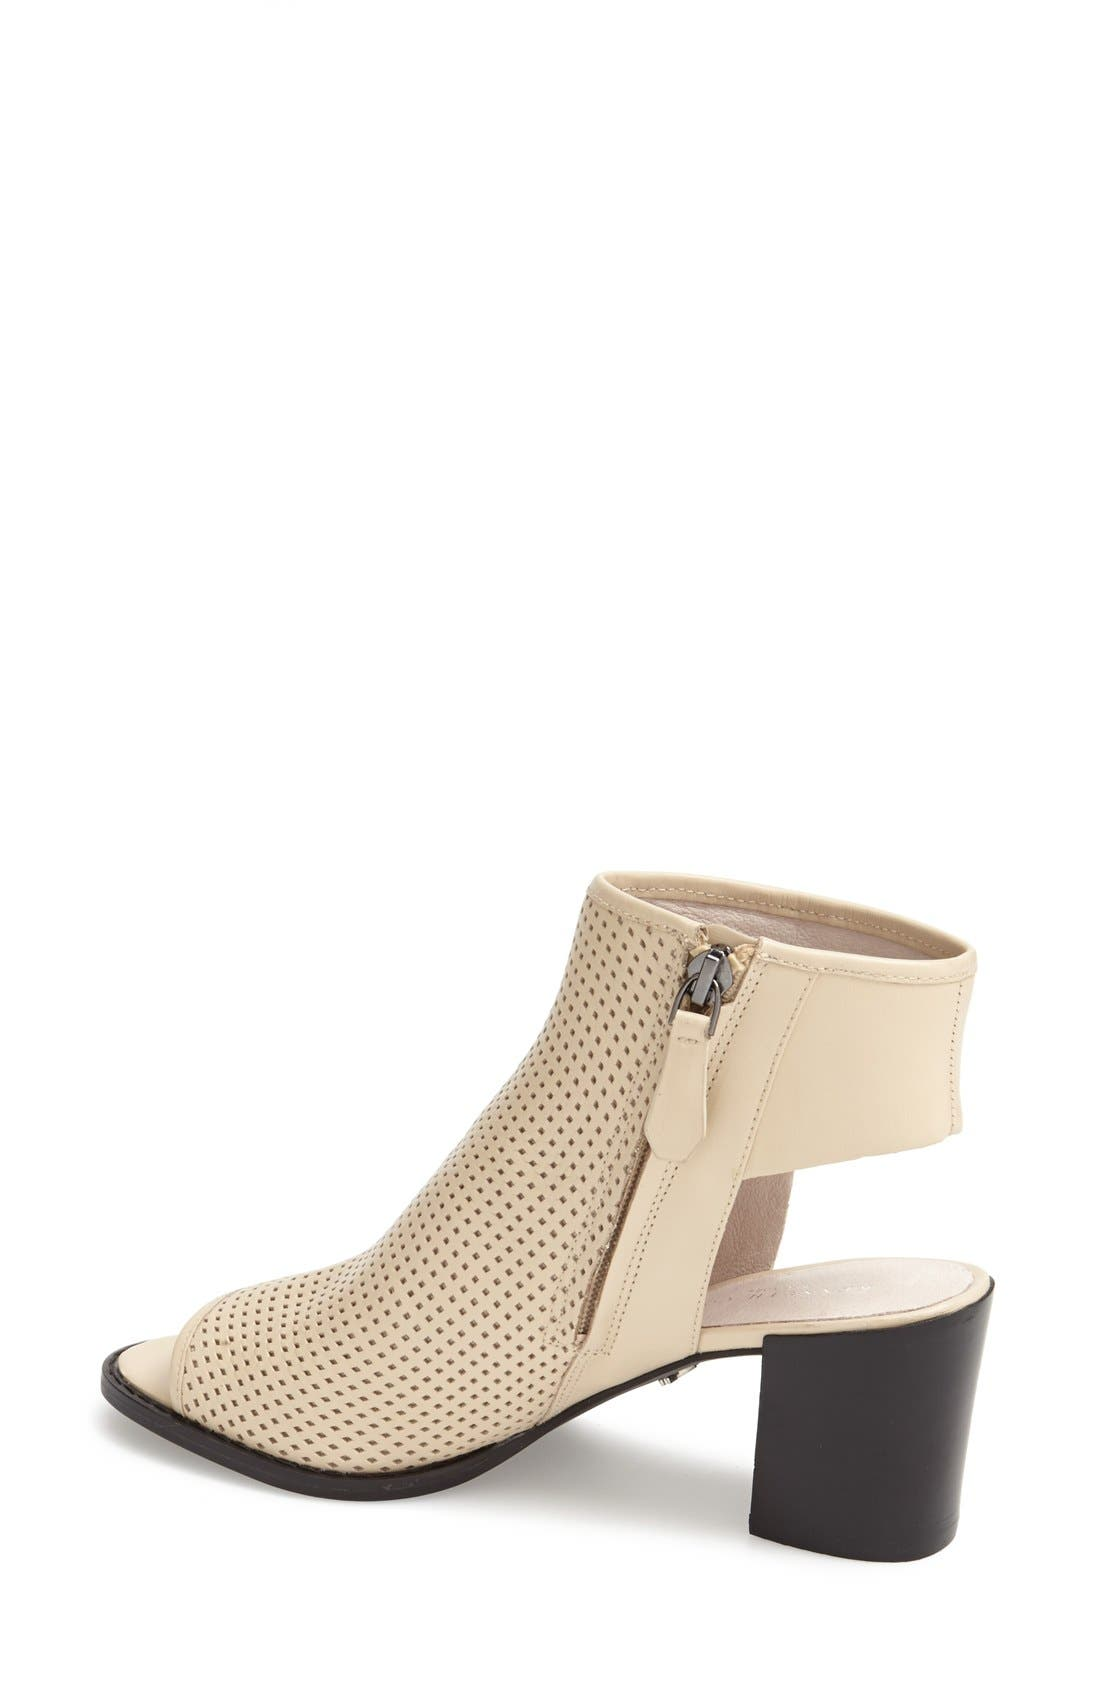 Alternate Image 2  - Kenneth Cole New York 'Shay' Open Toe Perforated Leather Bootie (Women)